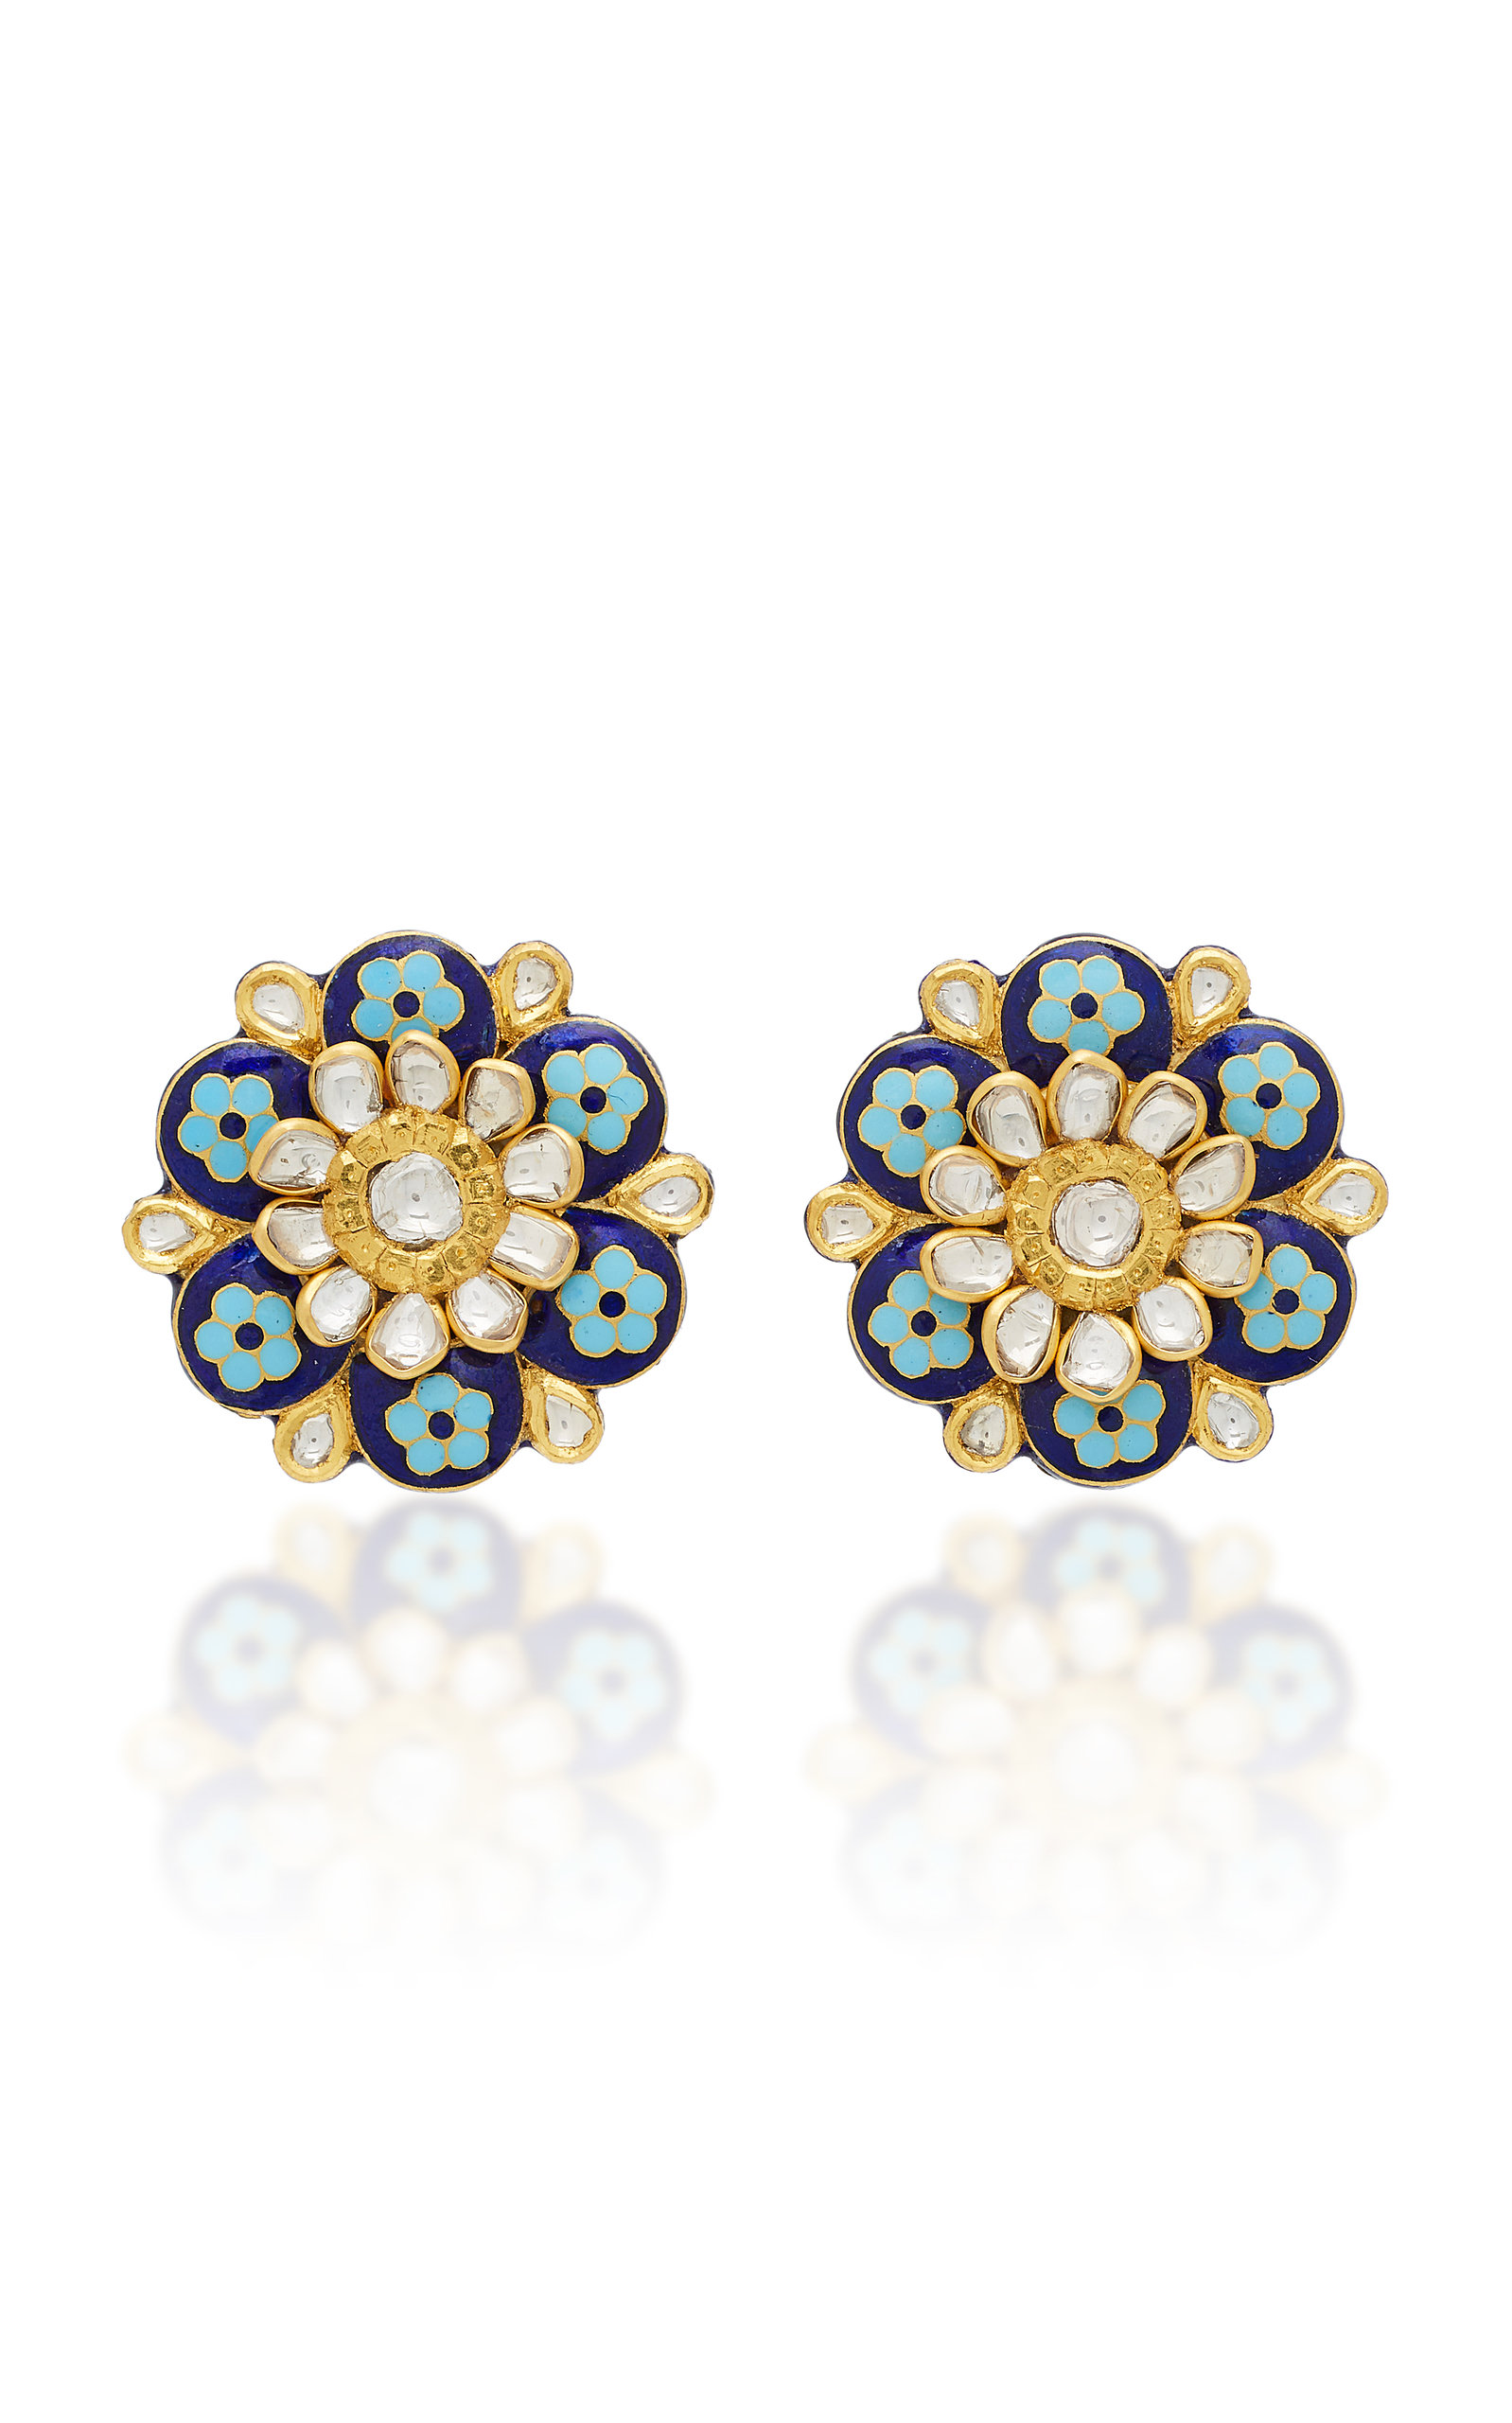 AMRAPALI 18K AND 22K GOLD ENAMEL AND DIAMOND EARRINGS